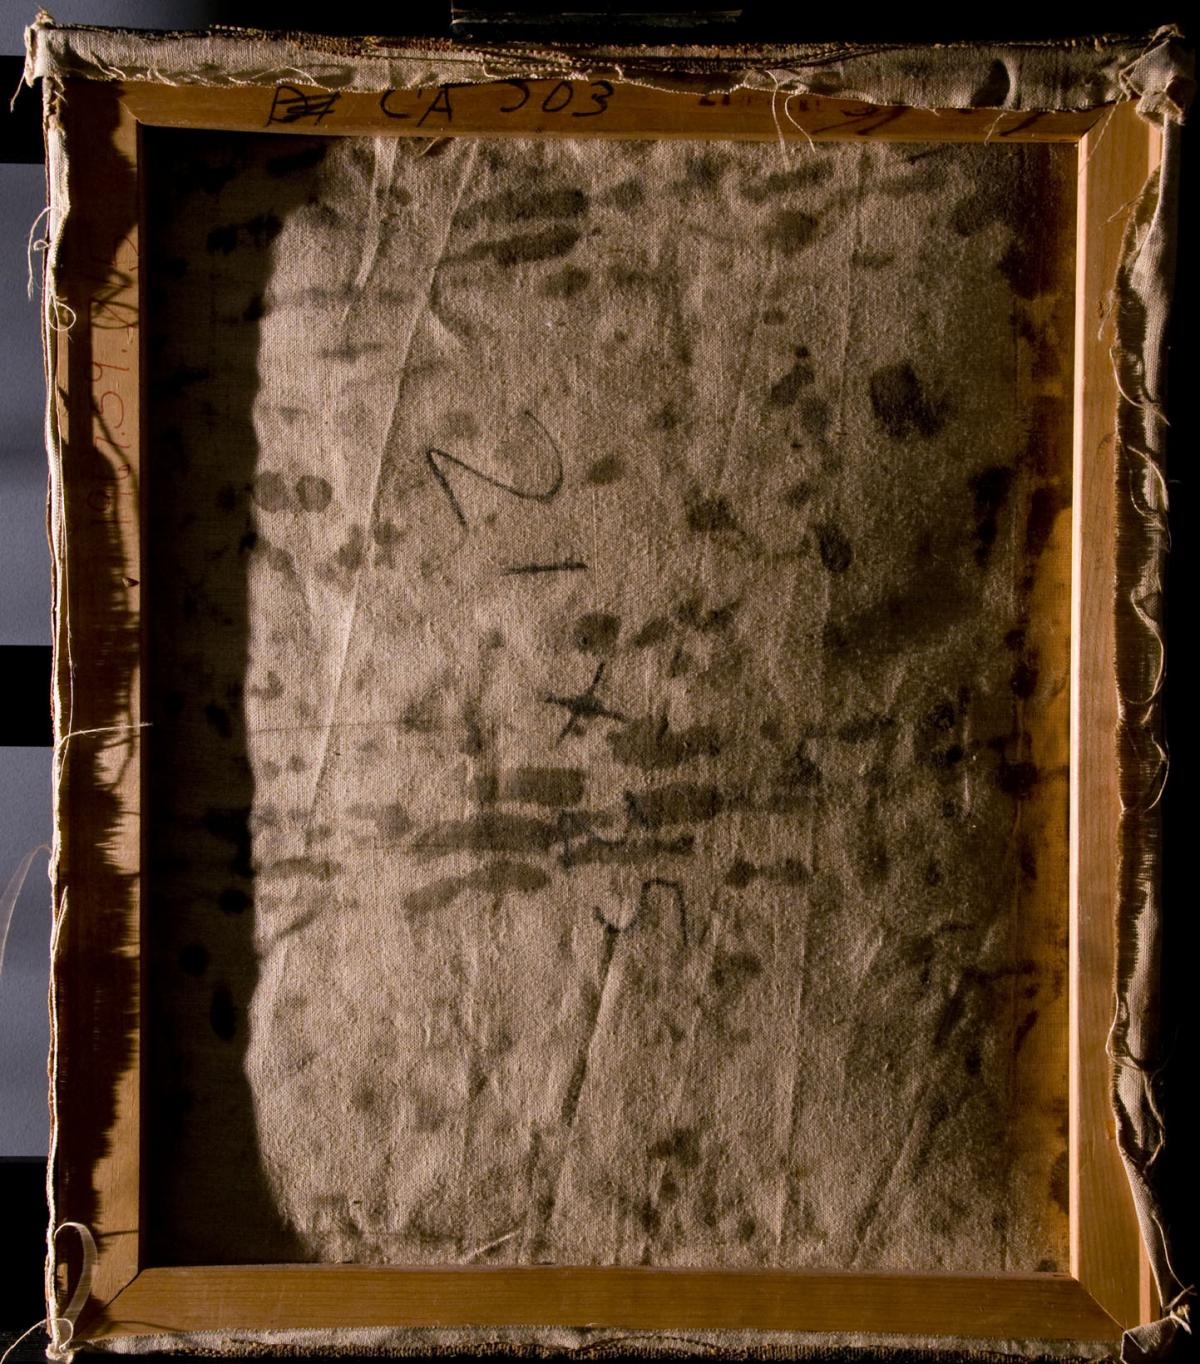 The back of a damaged painting shows staining before conservation